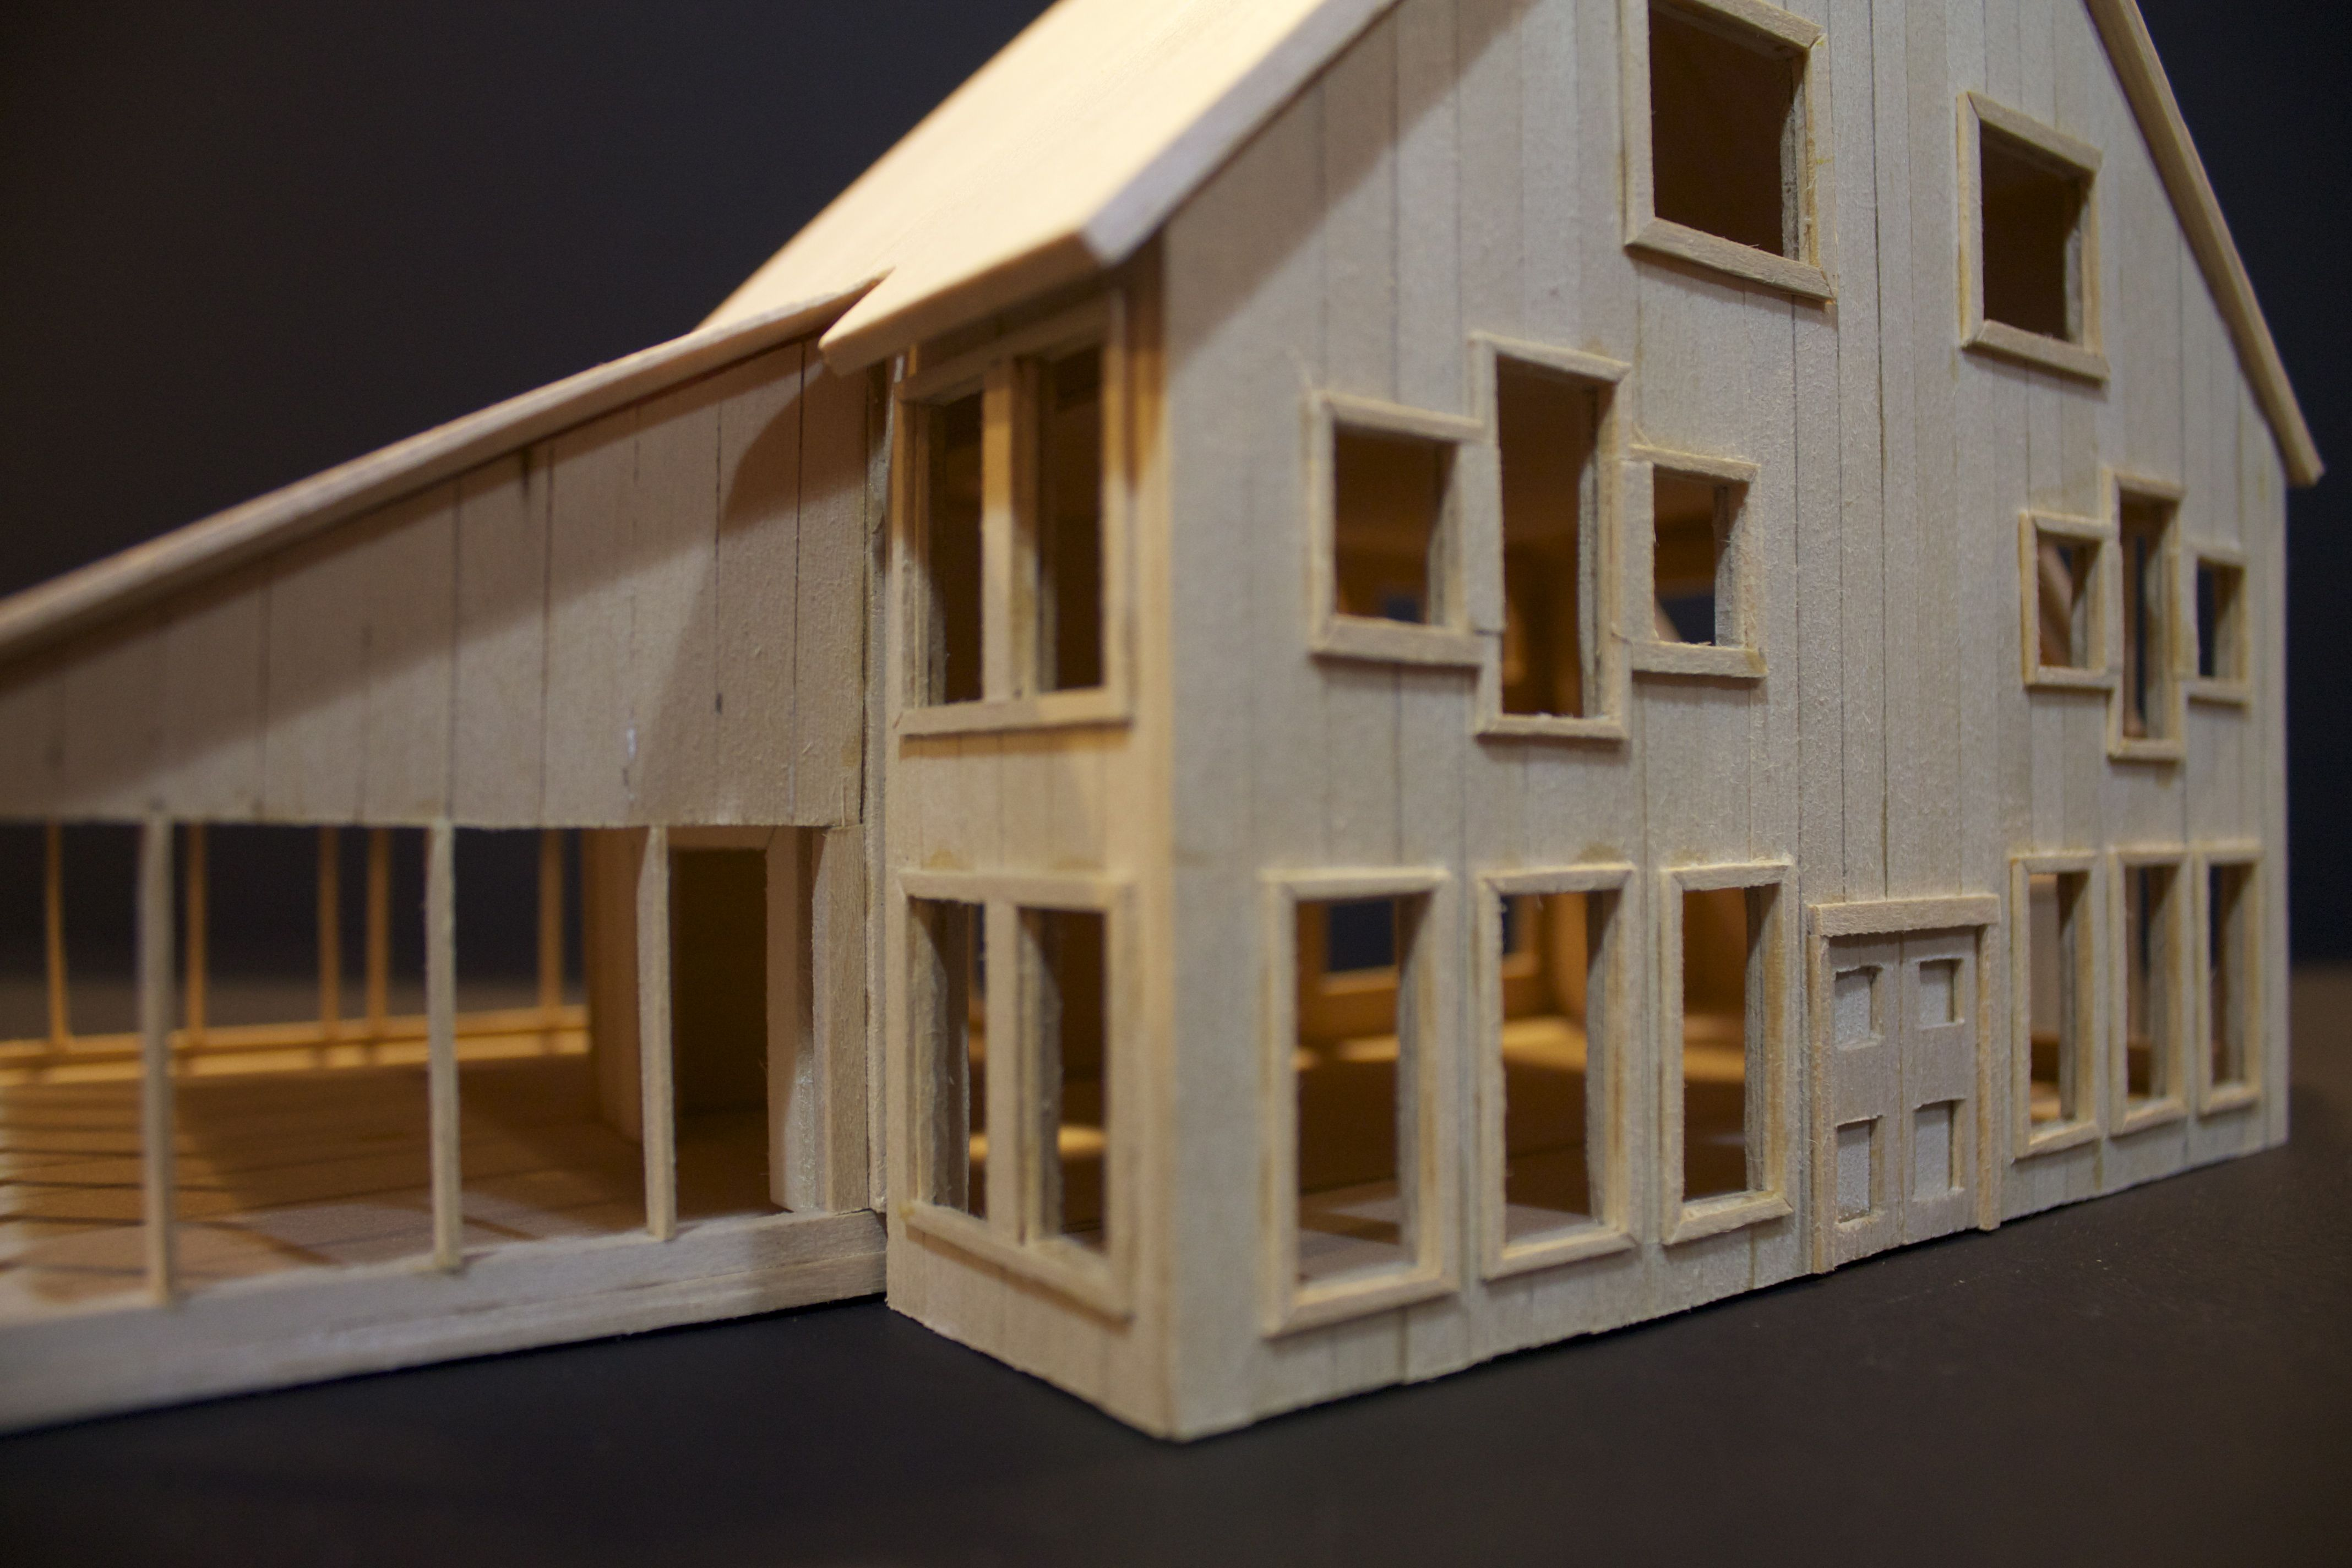 Pin By Cameron Ballantyne Smith On My Balsa Wood House Model Wood Crafts Diy House In The Woods Architecture